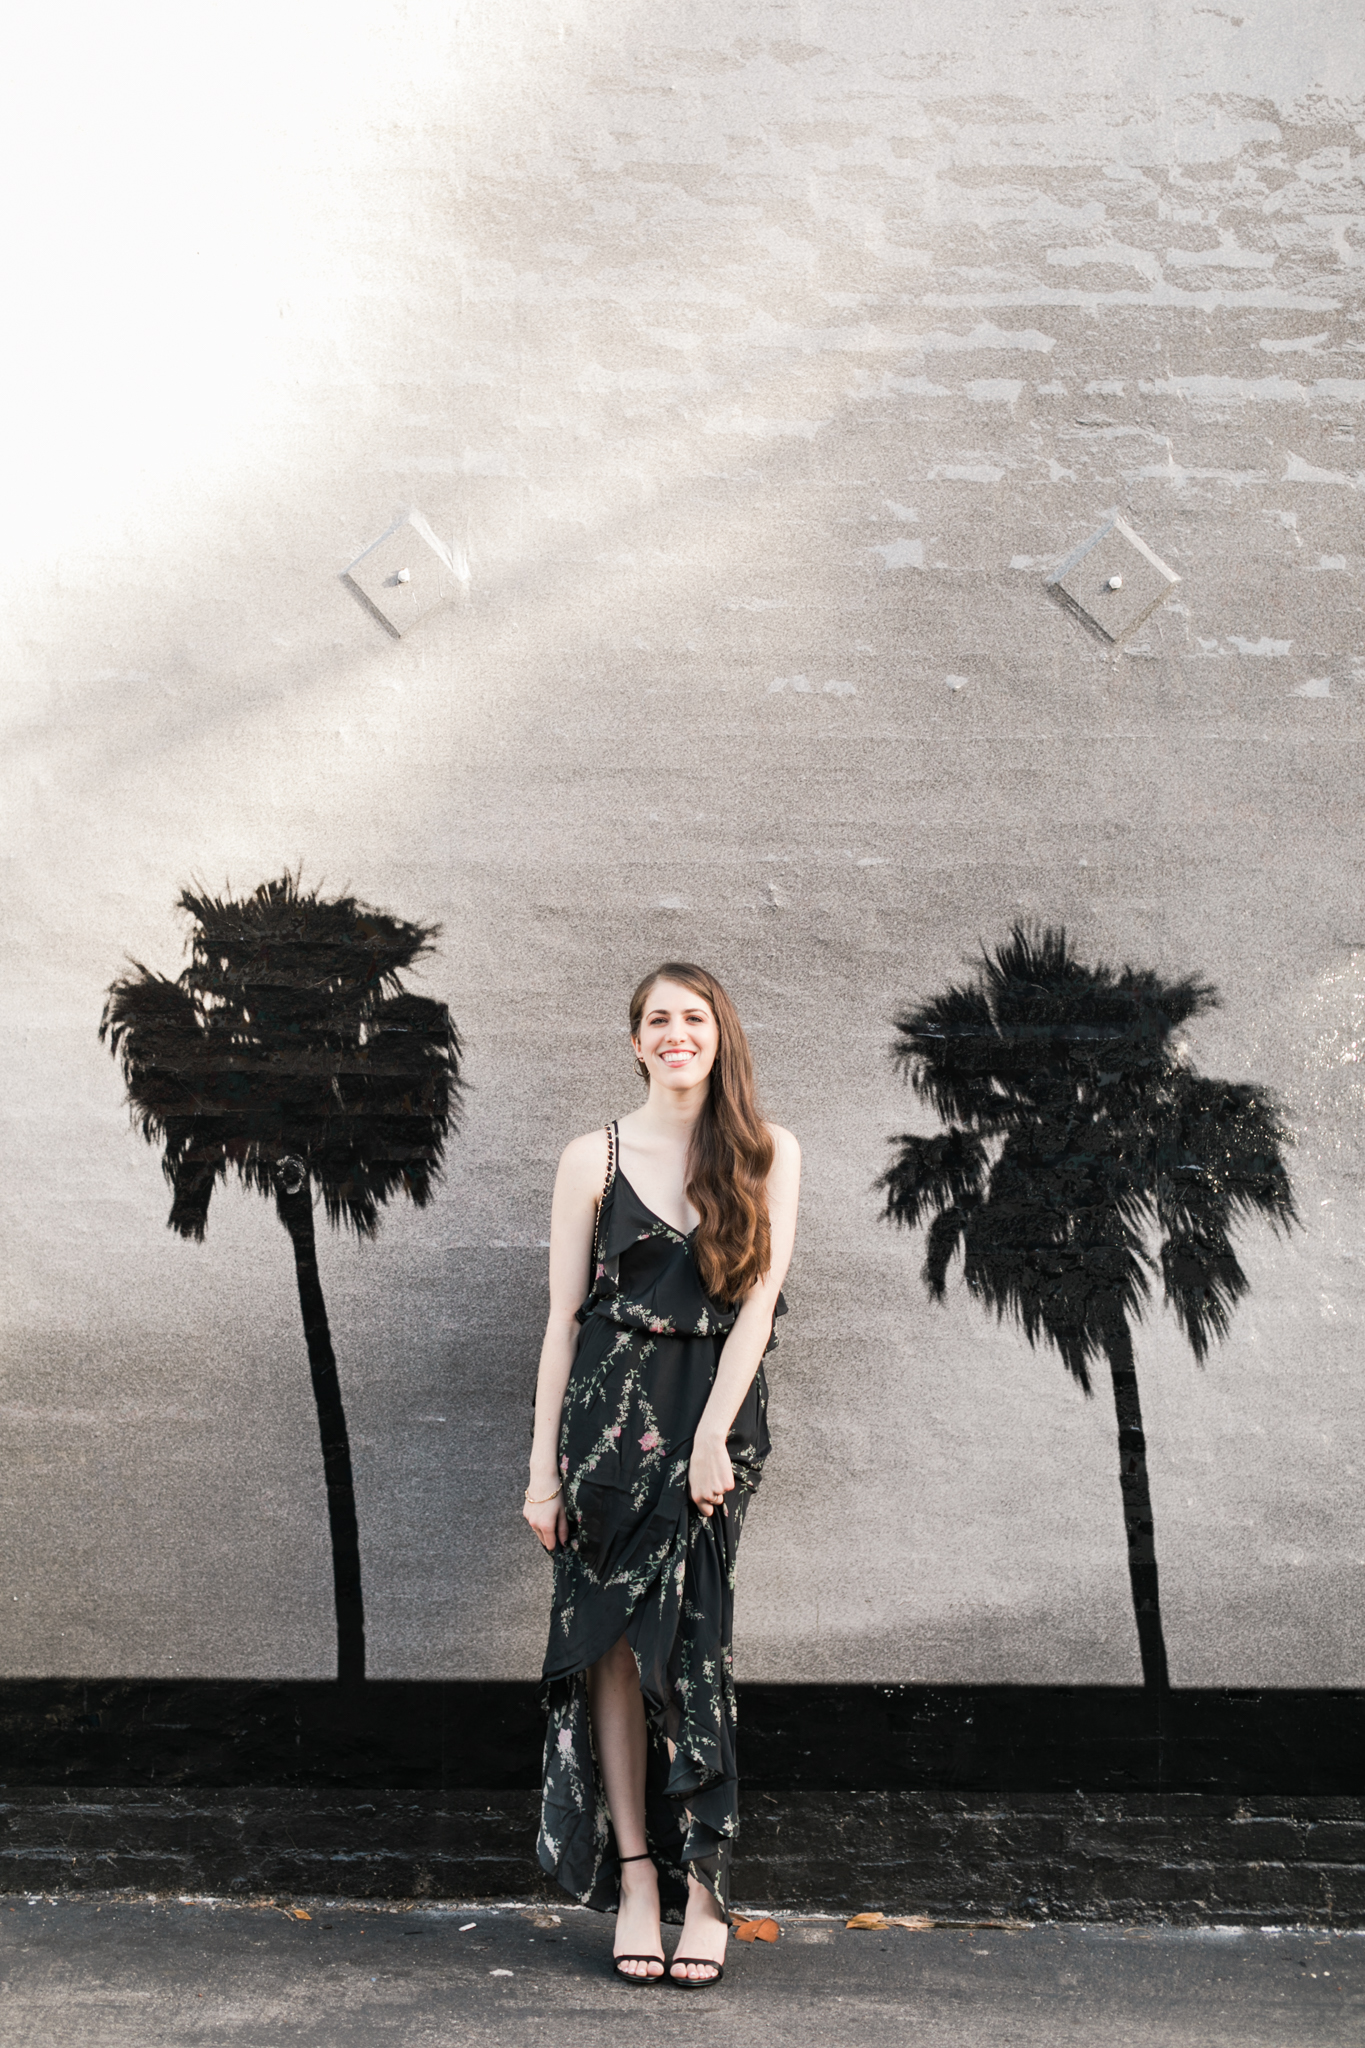 Valorie Darling photography Los Angeles, California